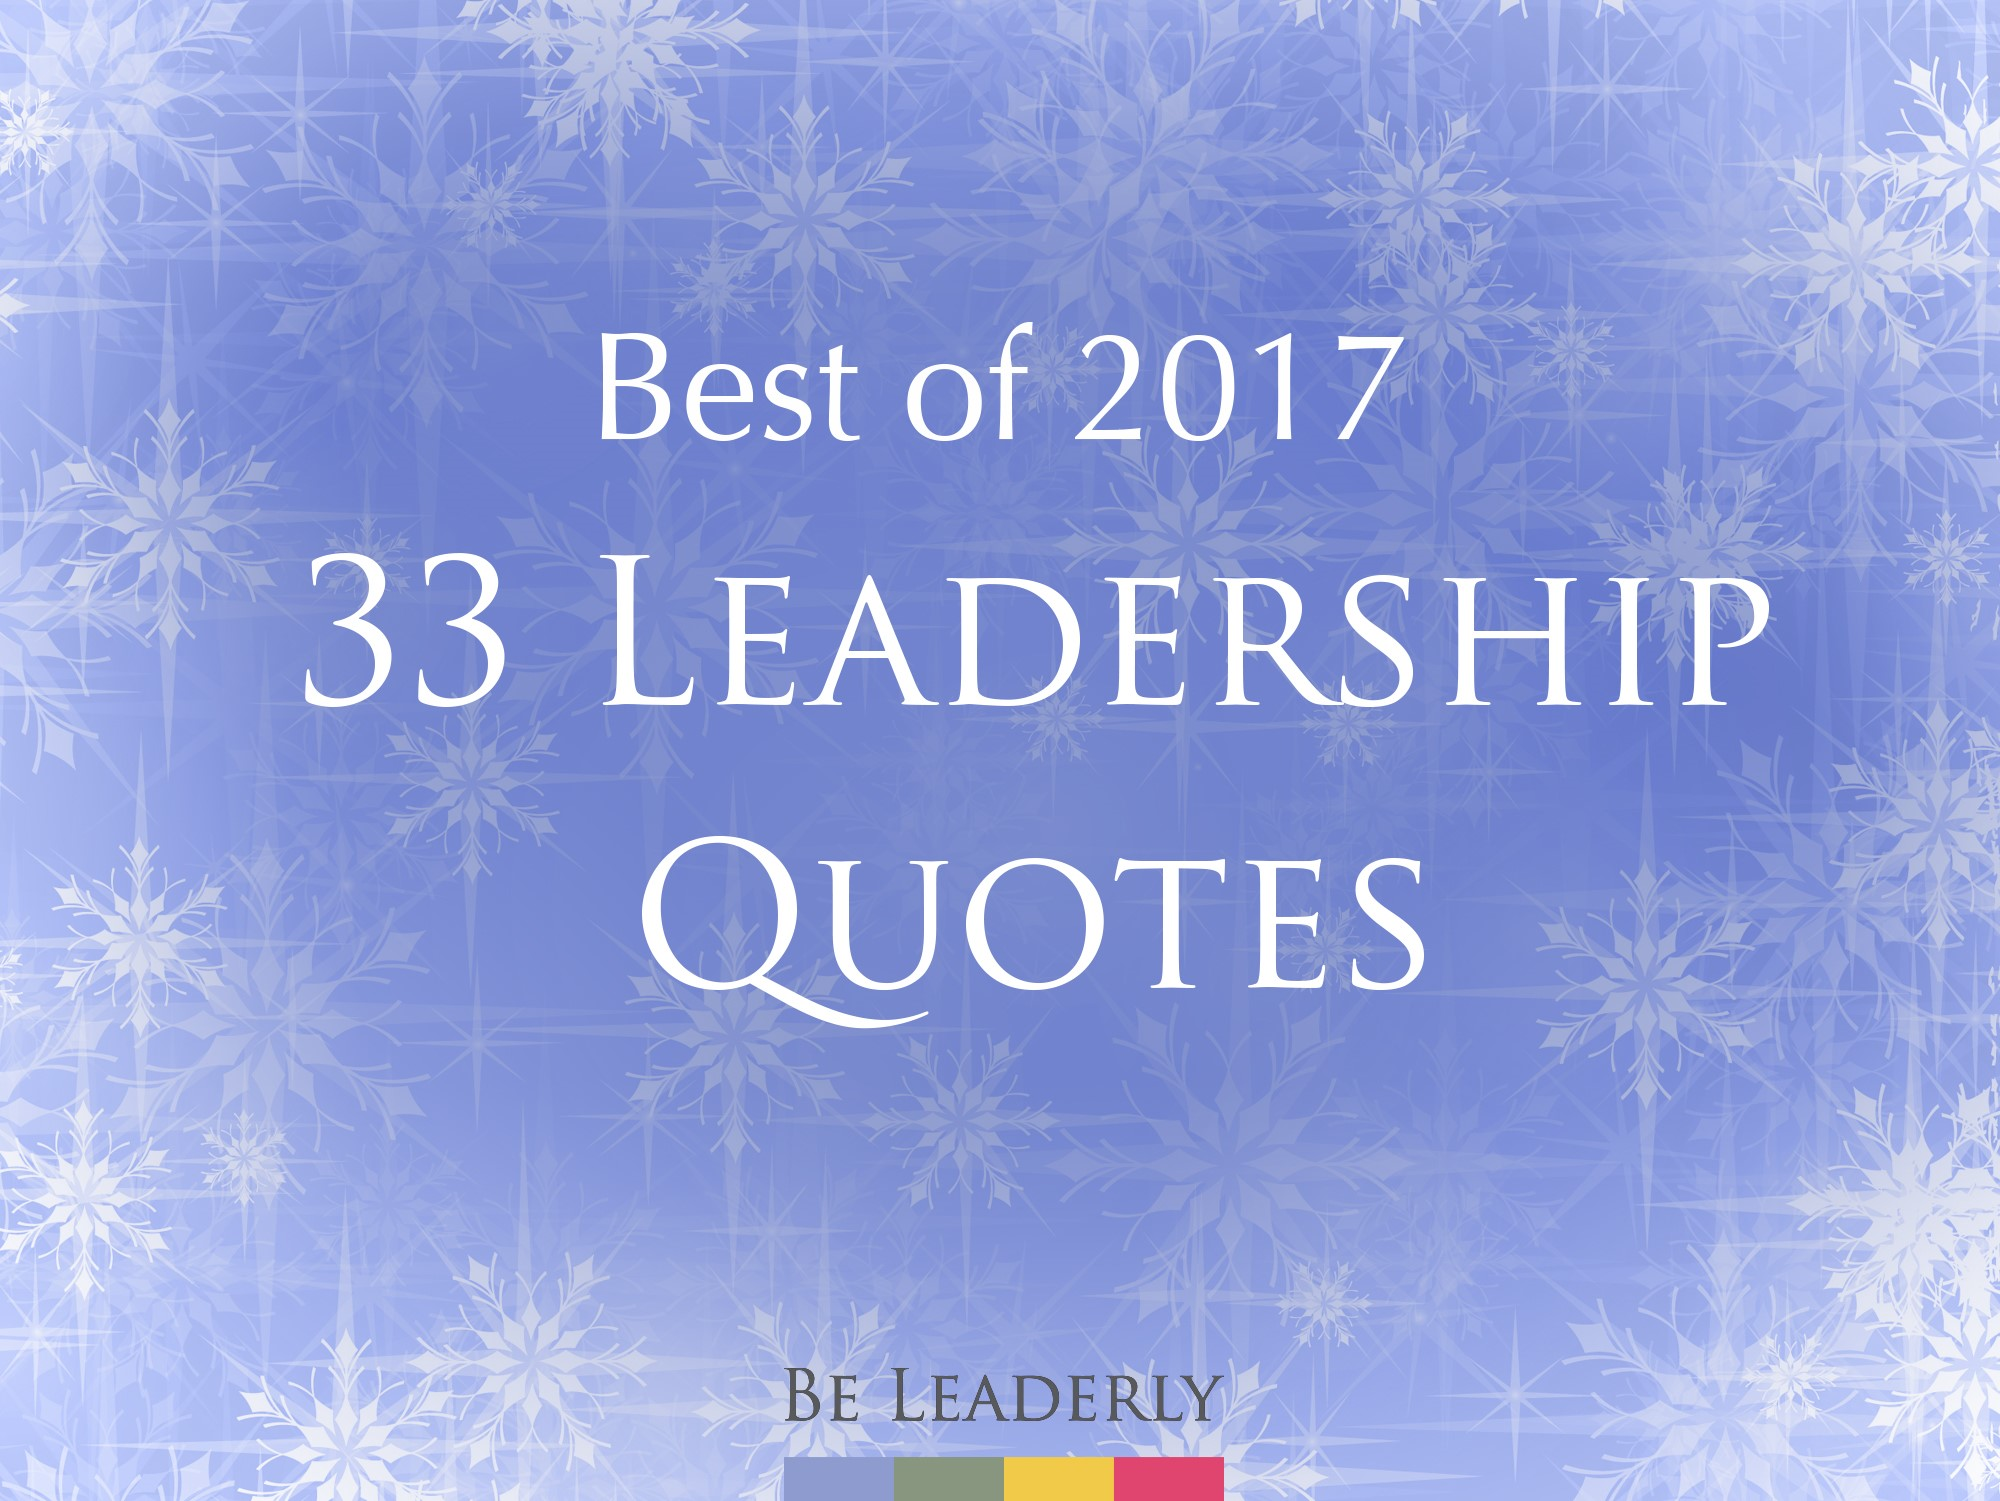 Best of 2017 - 33 Leadership Quotes About Leadership (Slideshow)